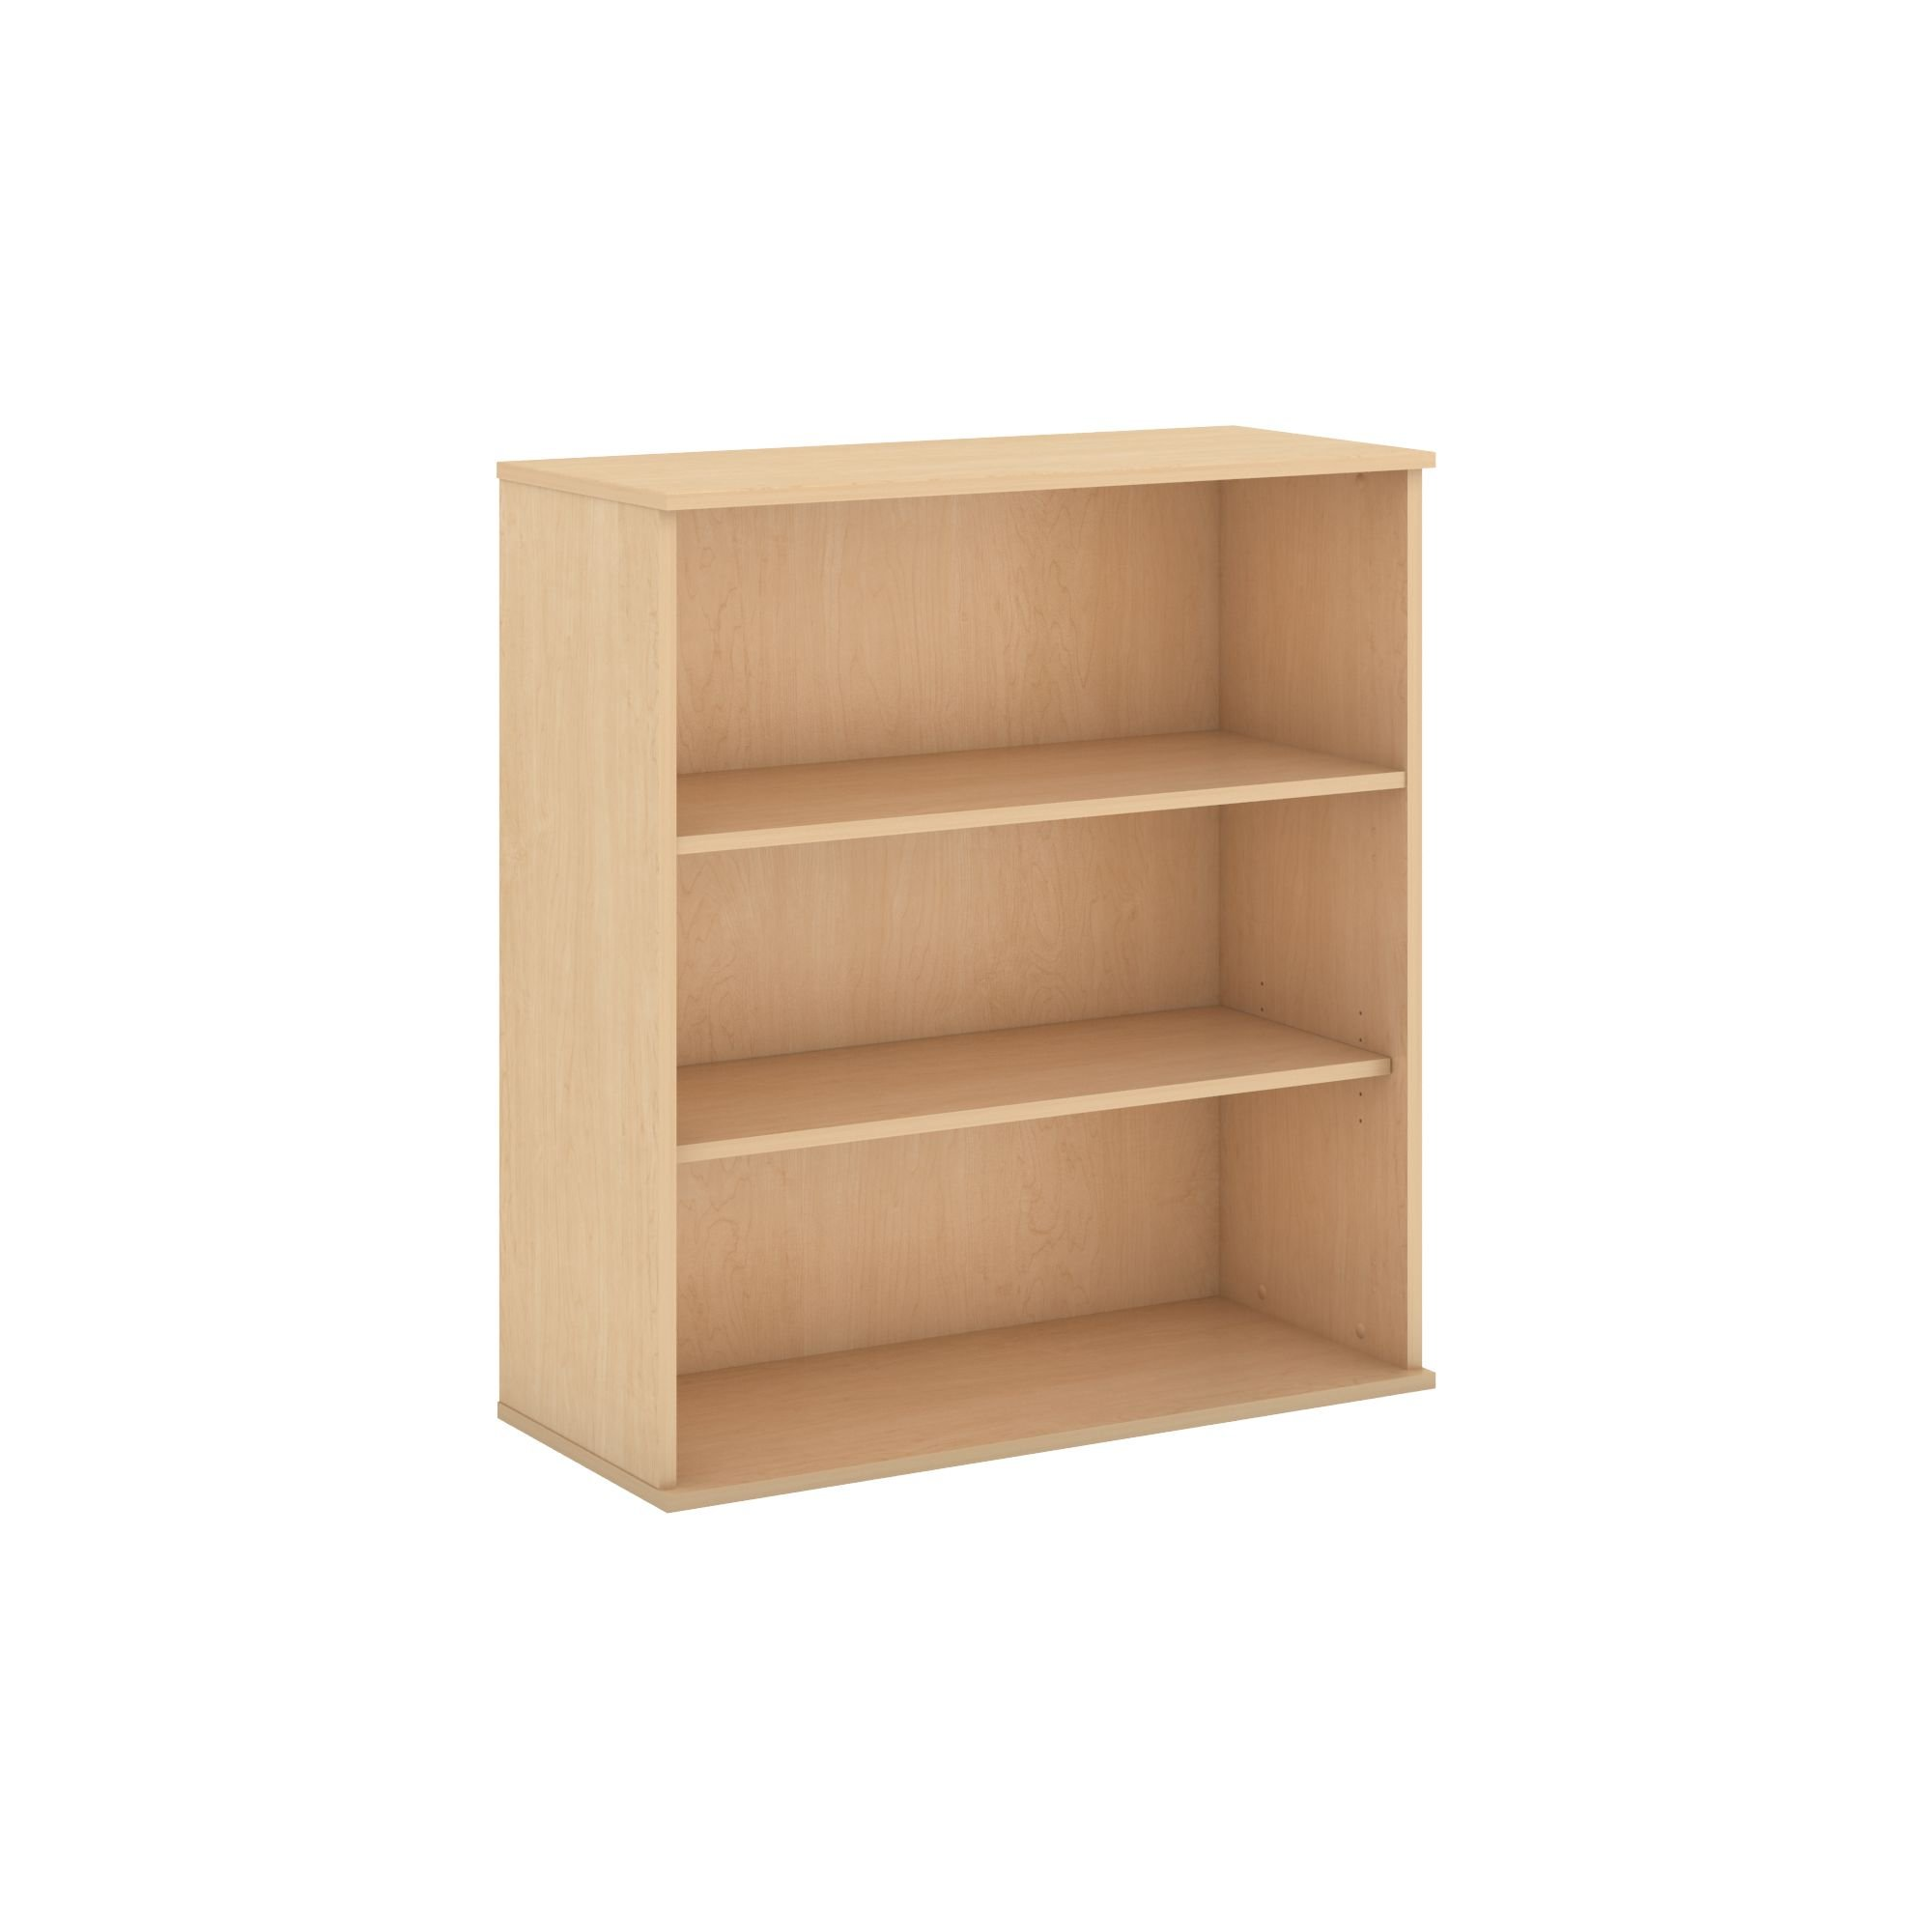 Bush Business Furniture 48H 3 Shelf Bookcase in Natural Maple by Bush Business Furniture